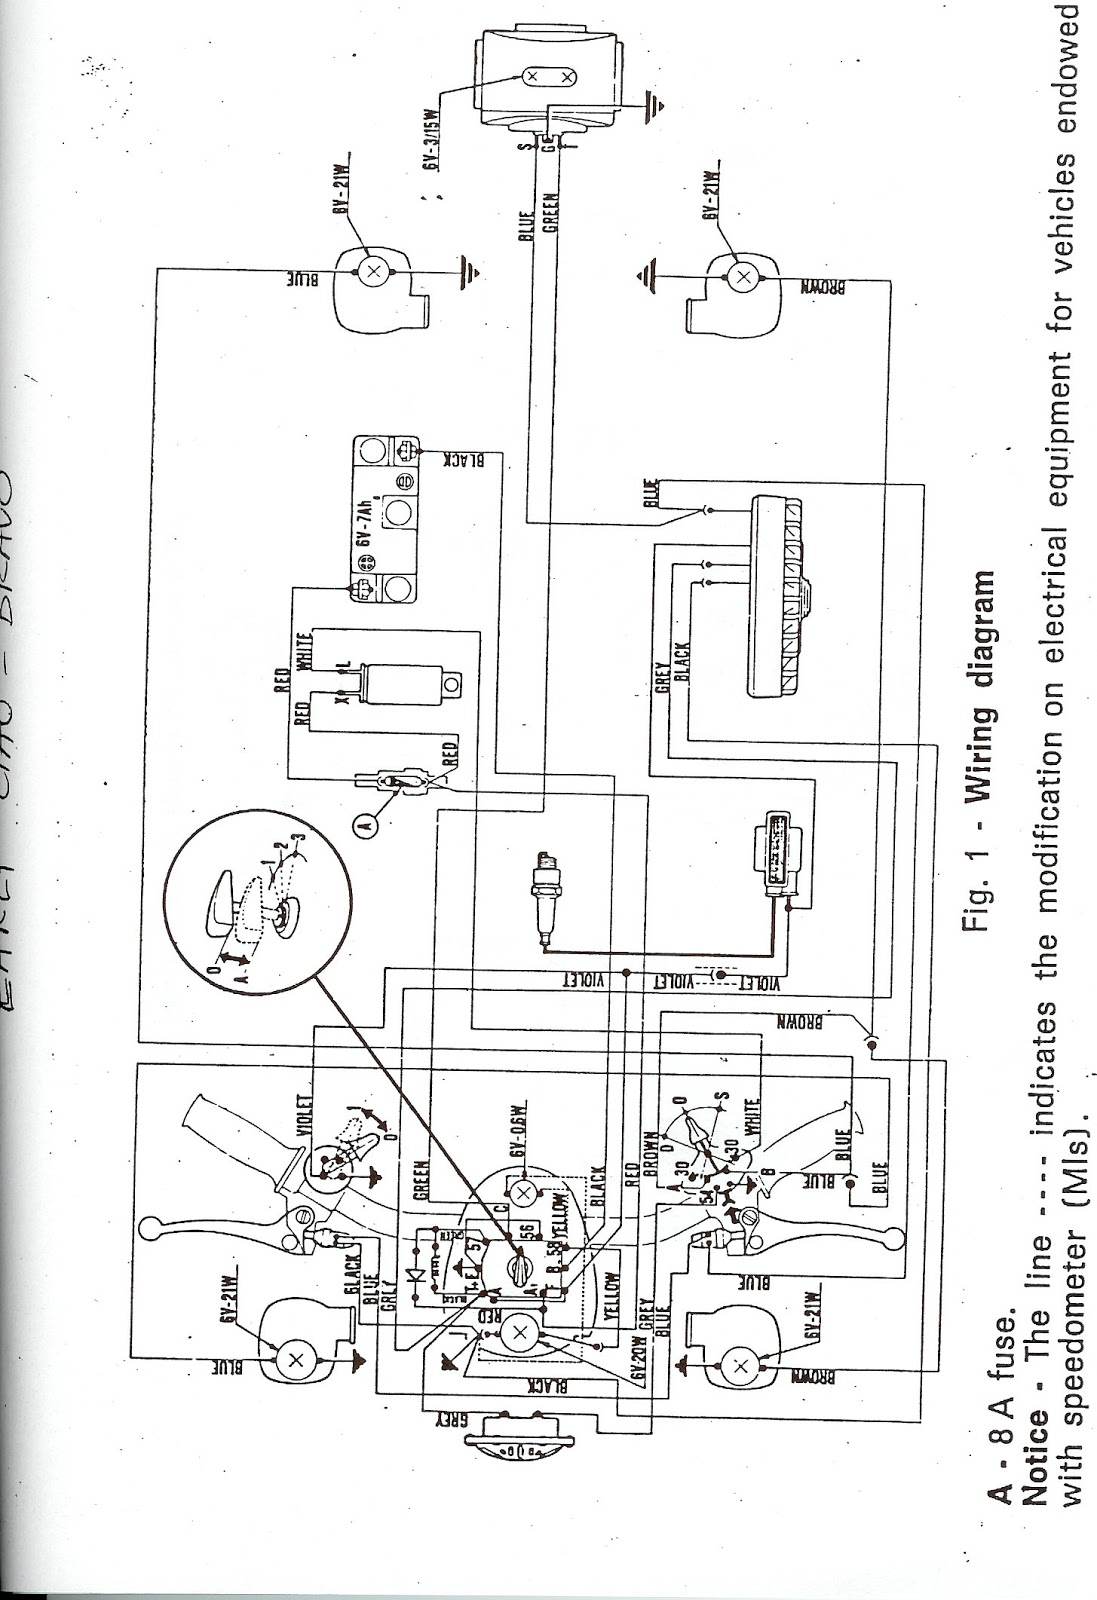 1149484169_vespa_early_ciao_bravo deadped vespa wiring in a nutshell magneti marelli a127-70 wiring diagram at readyjetset.co